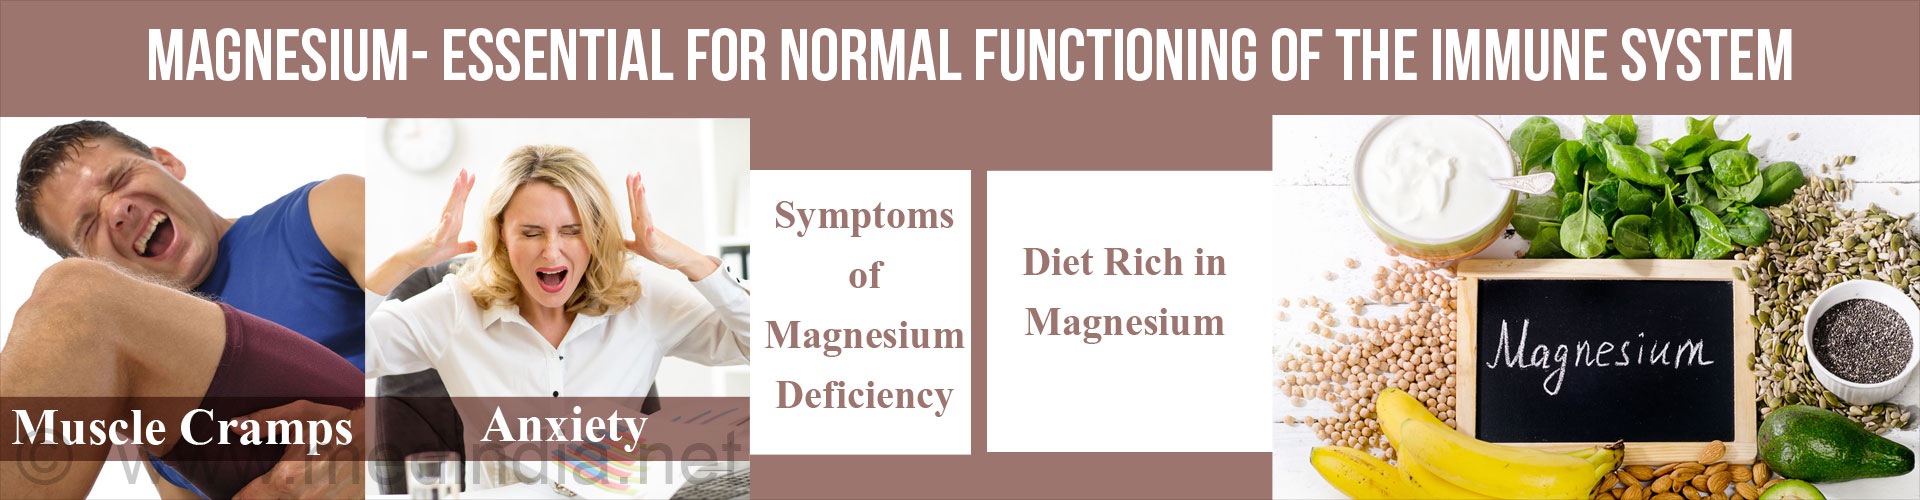 Magnesium - Essential For Normal Functioning of the Immune System Symptoms of Magnesium - Muscle Cramps - Anxiety Diet rich in magnesium